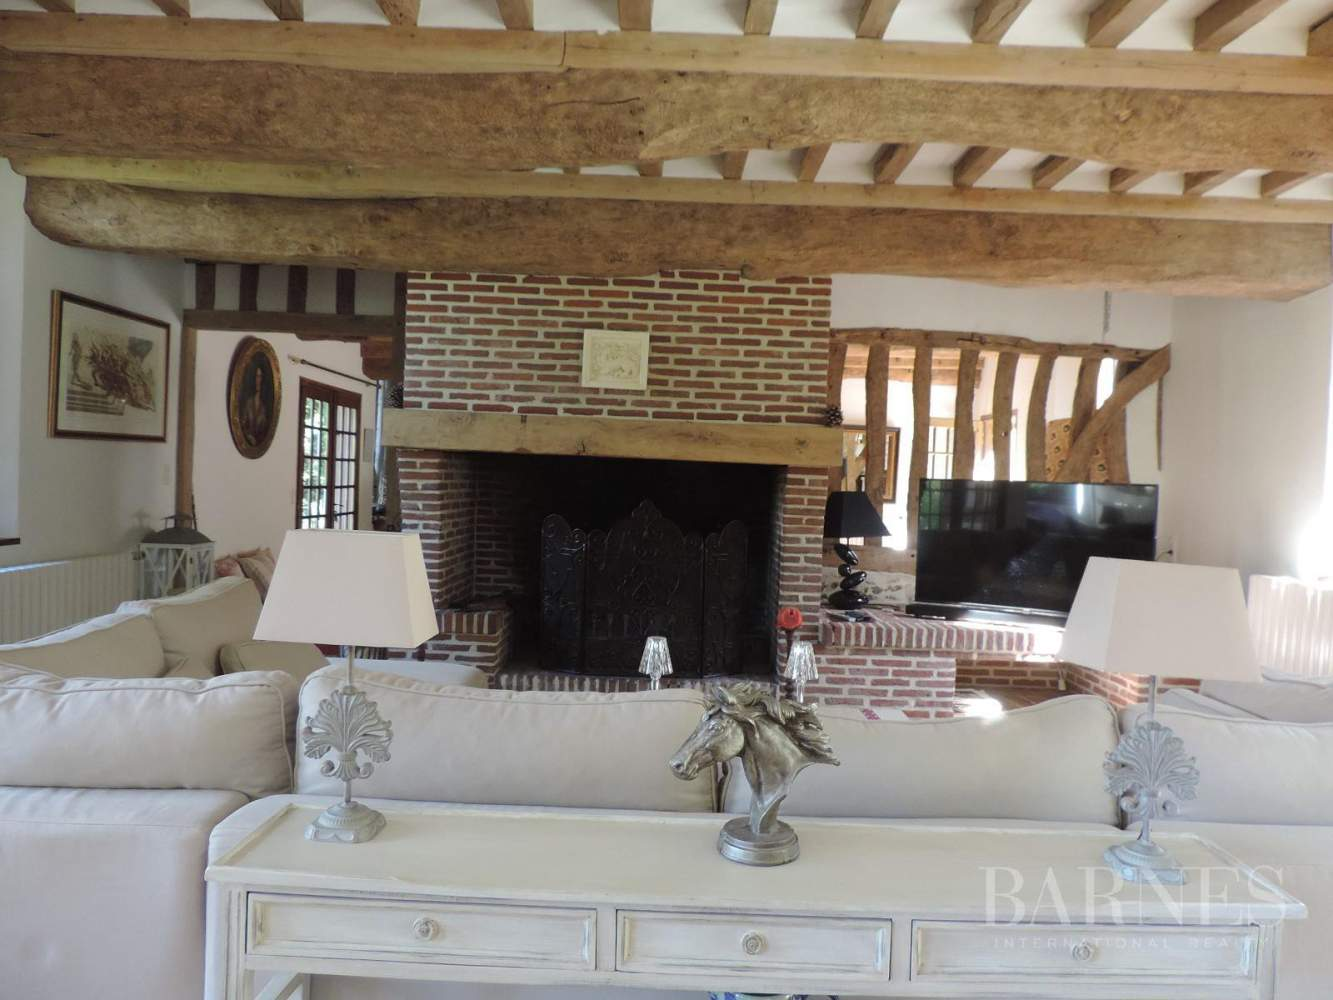 Near Deauville Property with character - 5 bedrooms - heated pool, tennis court, 2.47-acre landscaped park picture 7